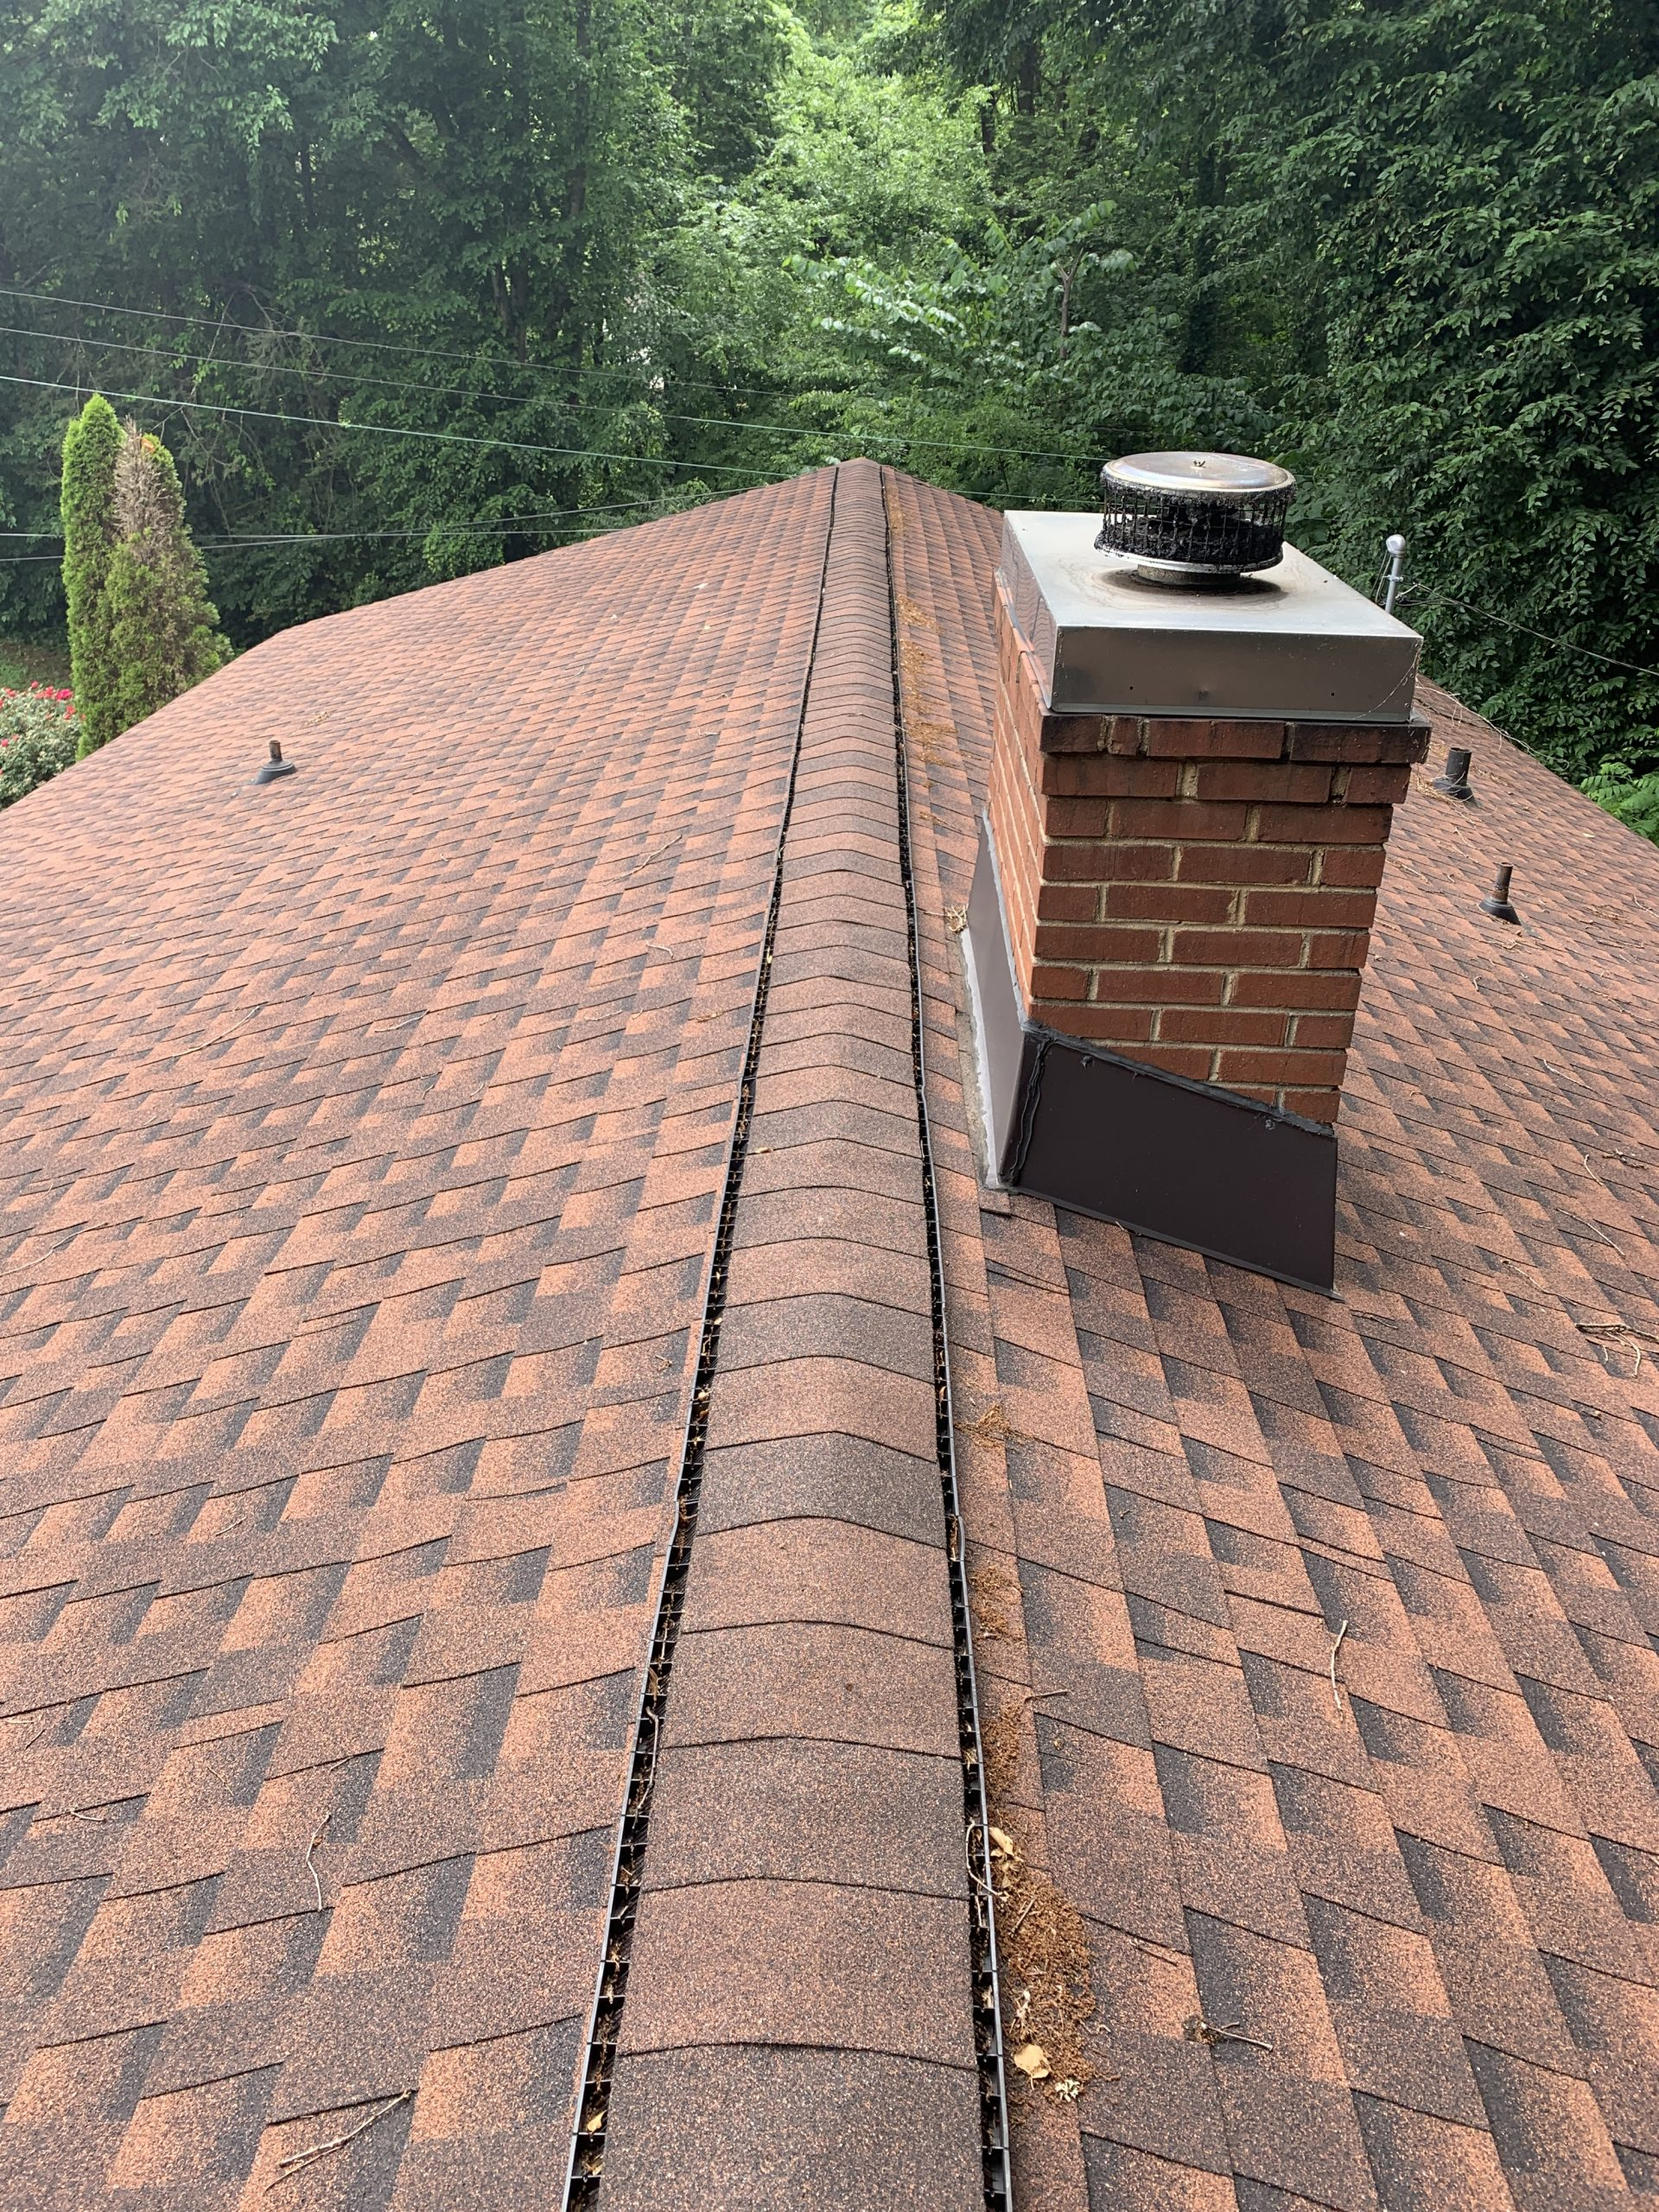 this is a picture of a roof that has new gaf timberine hickory colored shingles